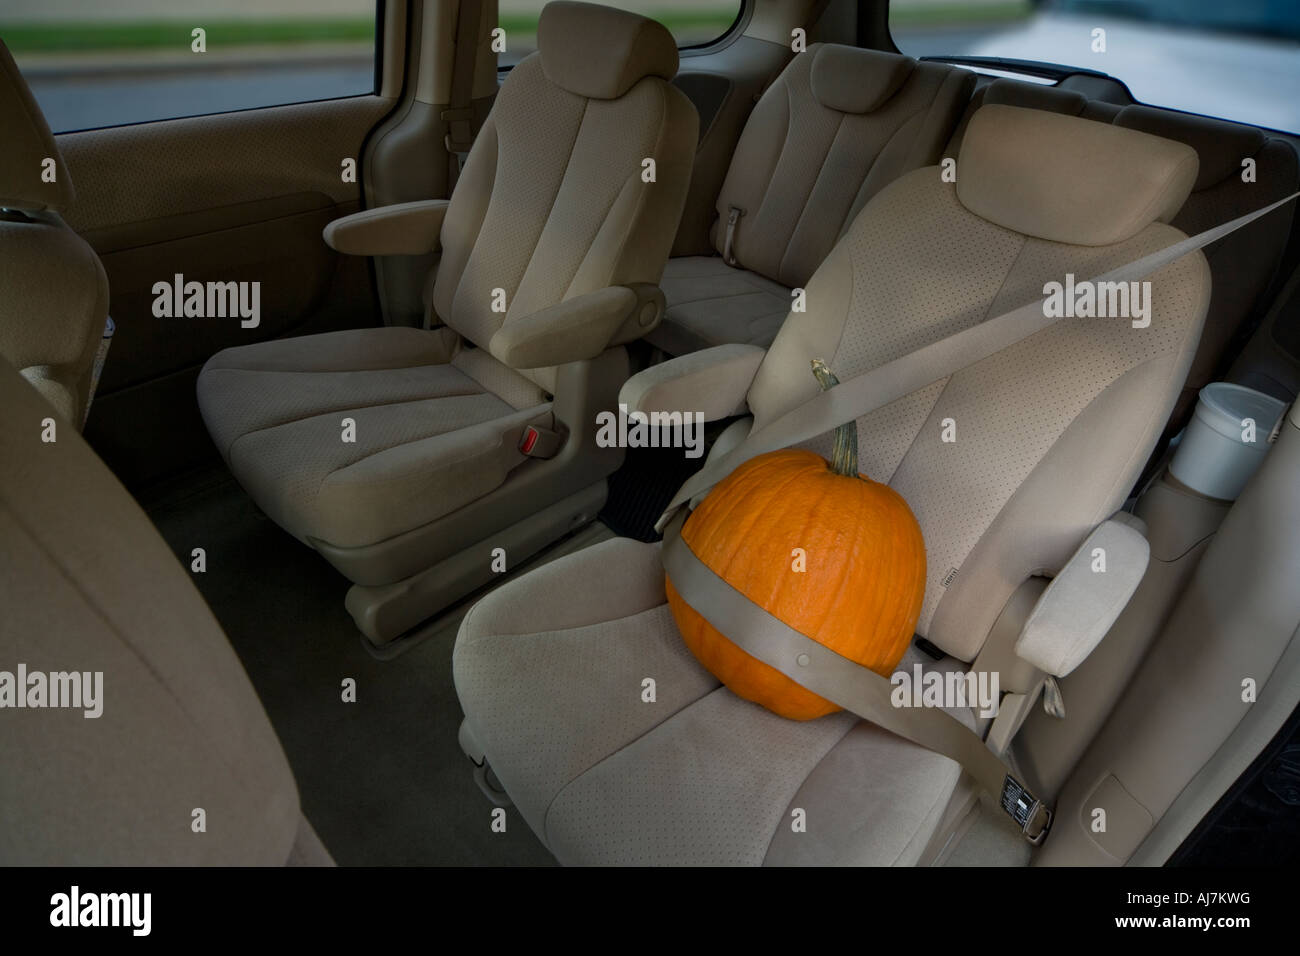 https://c7.alamy.com/comp/AJ7KWG/preparations-for-halloween-overly-protective-halloween-pumpkin-in-AJ7KWG.jpg